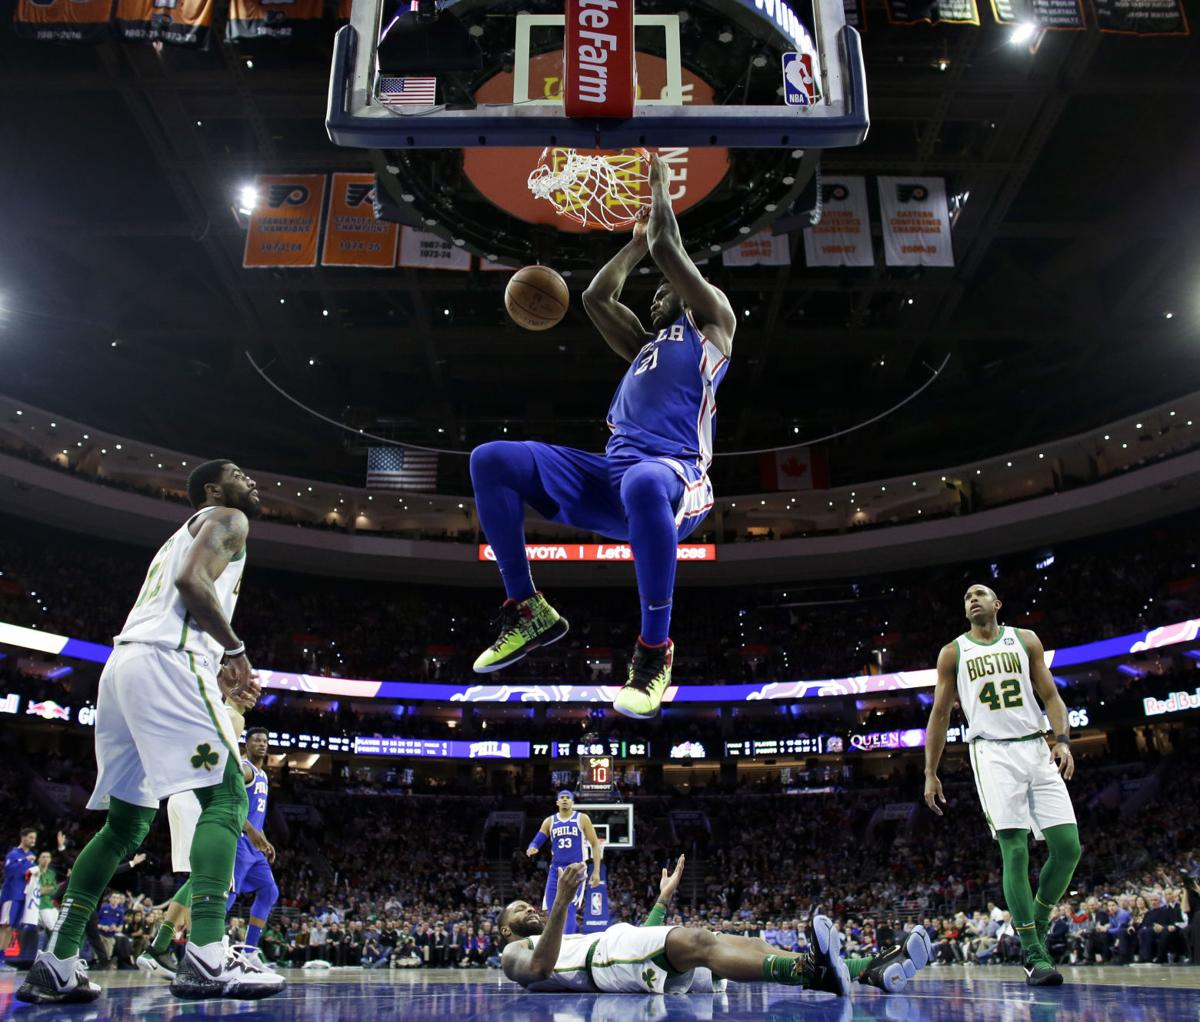 Philadelphia 76ers' Joel Embiid (21) dunks as Boston Celtics' Kyrie Irving, Marcus Morris and Al Horford, from left, watch